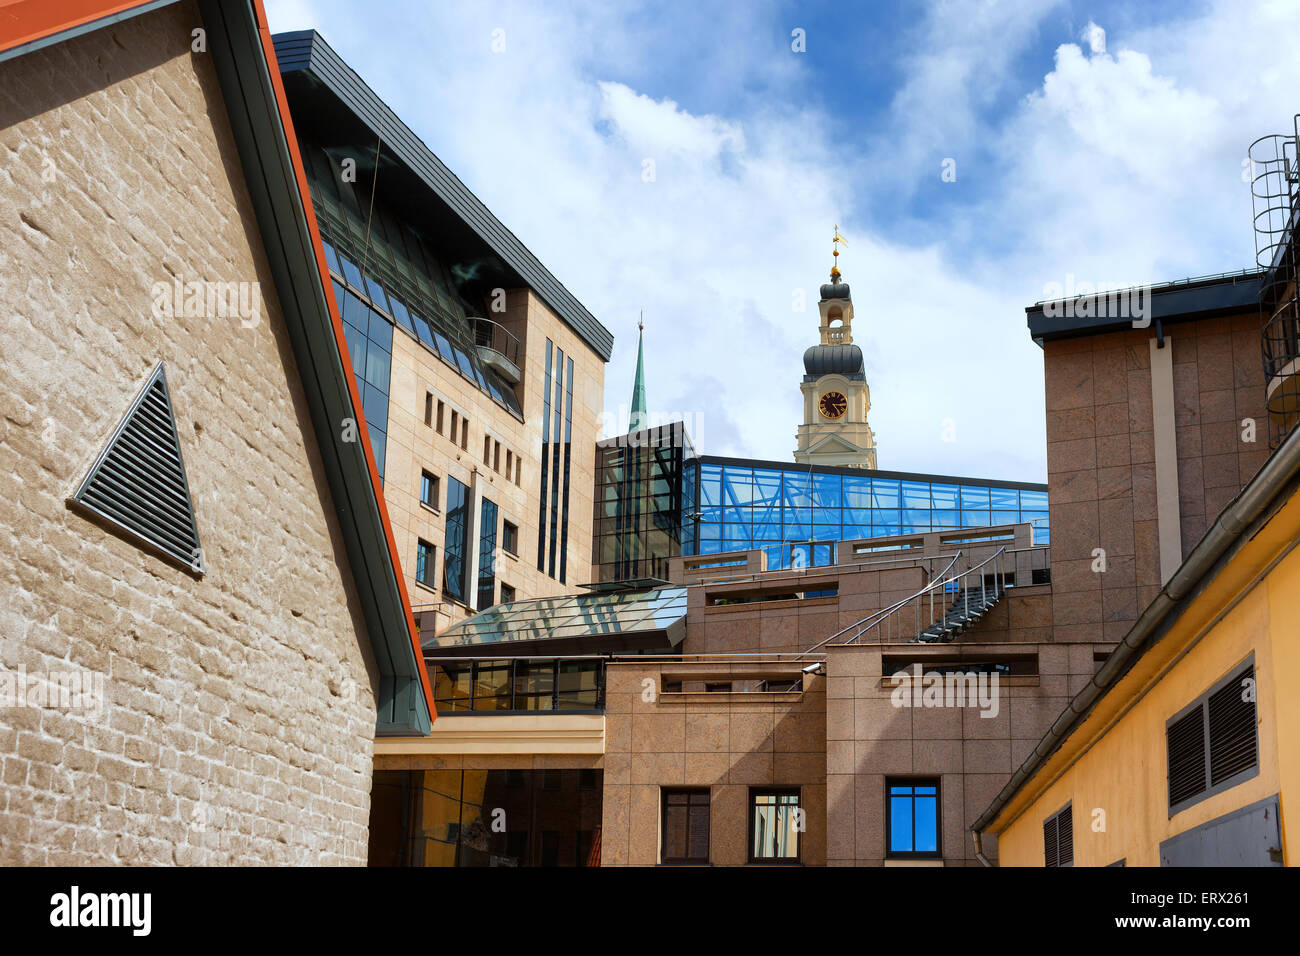 Urban unusual view of the building of the Riga Town Hall with a tower and a clock and a courtyard - Stock Image